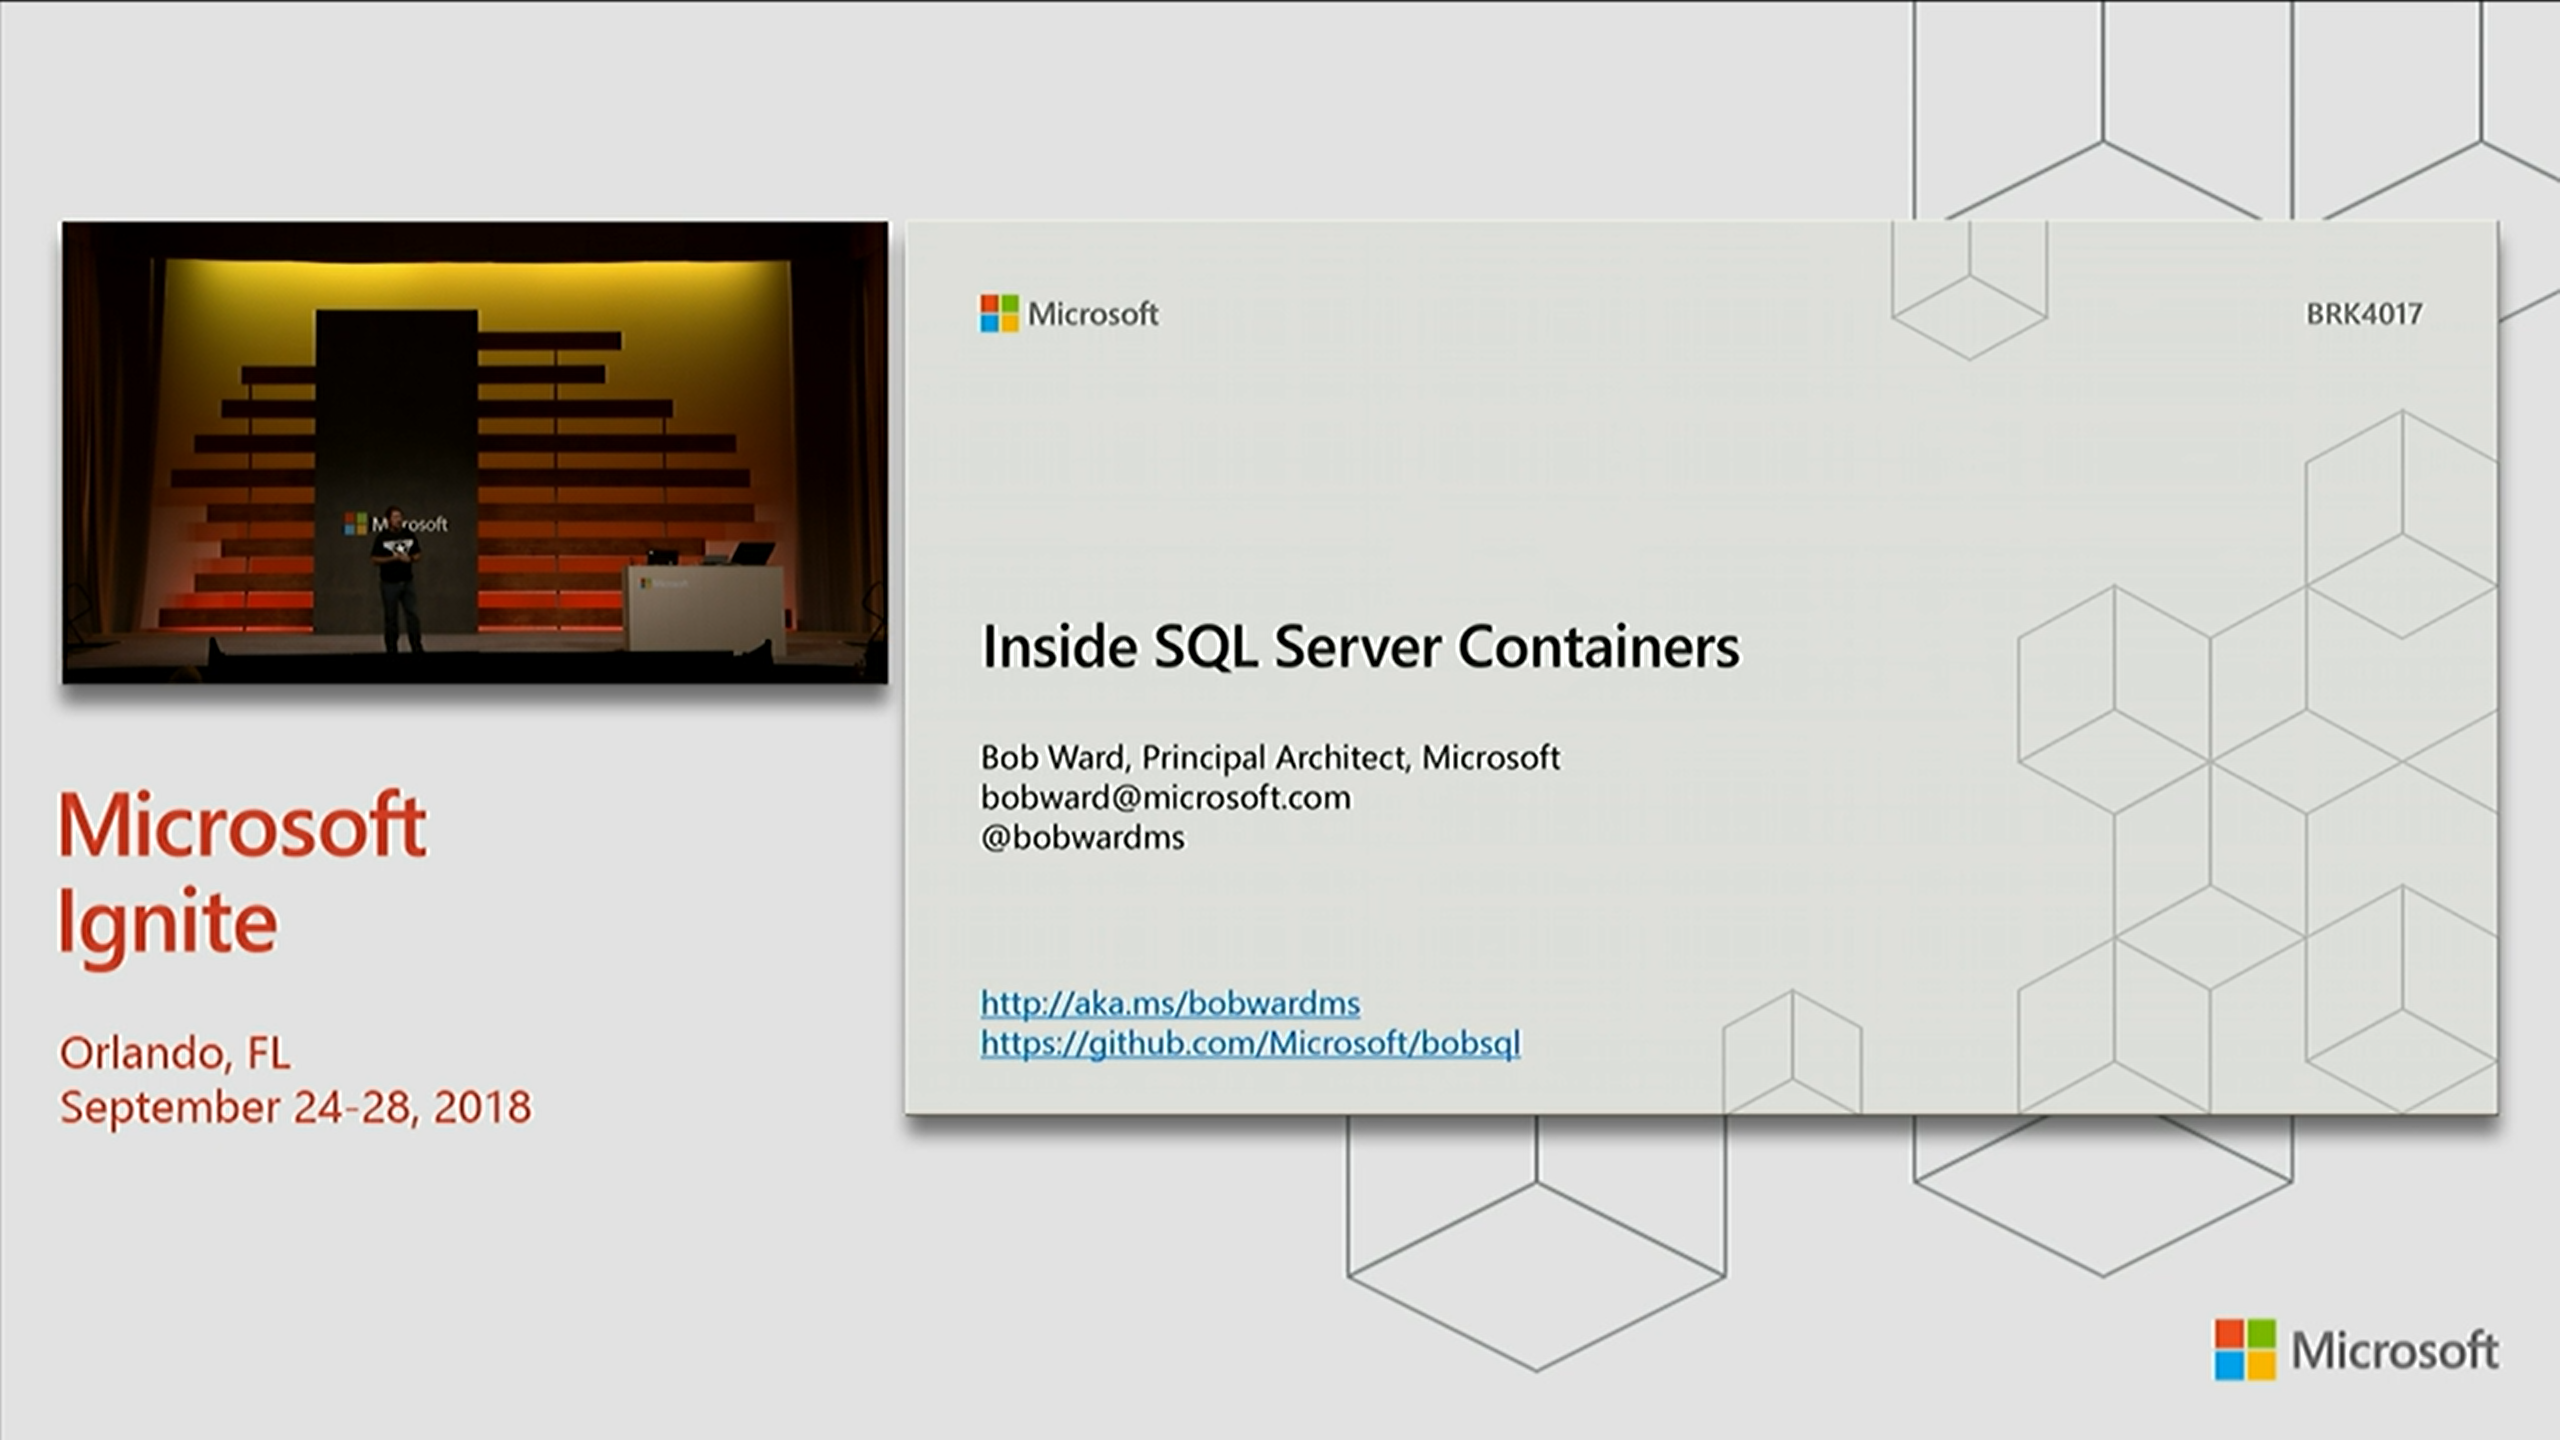 Inside SQL Server Containers